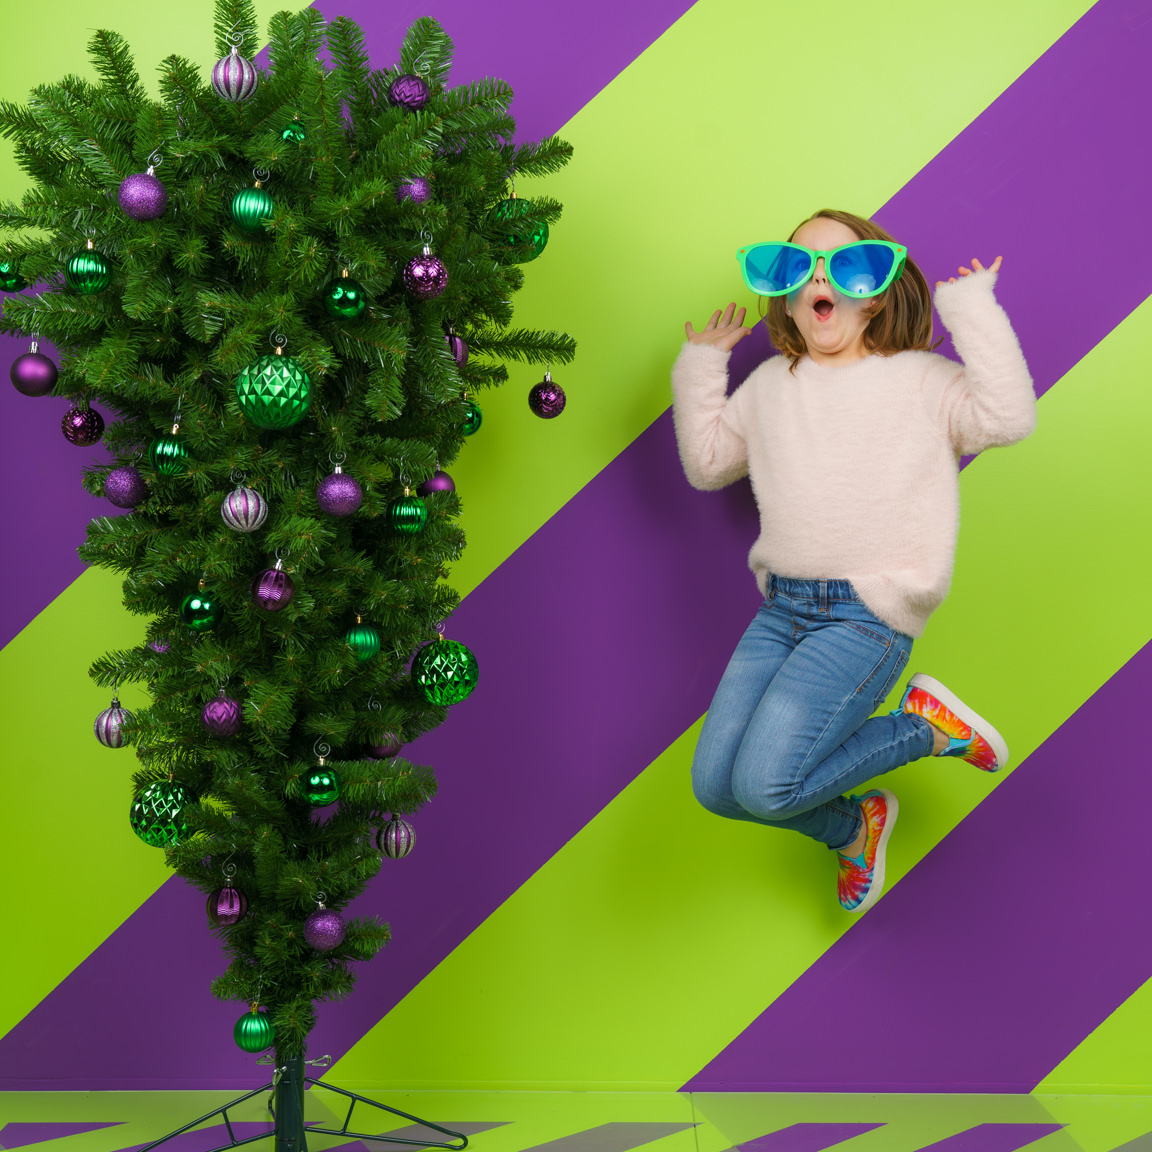 child jumping next to upside down Christmas tree